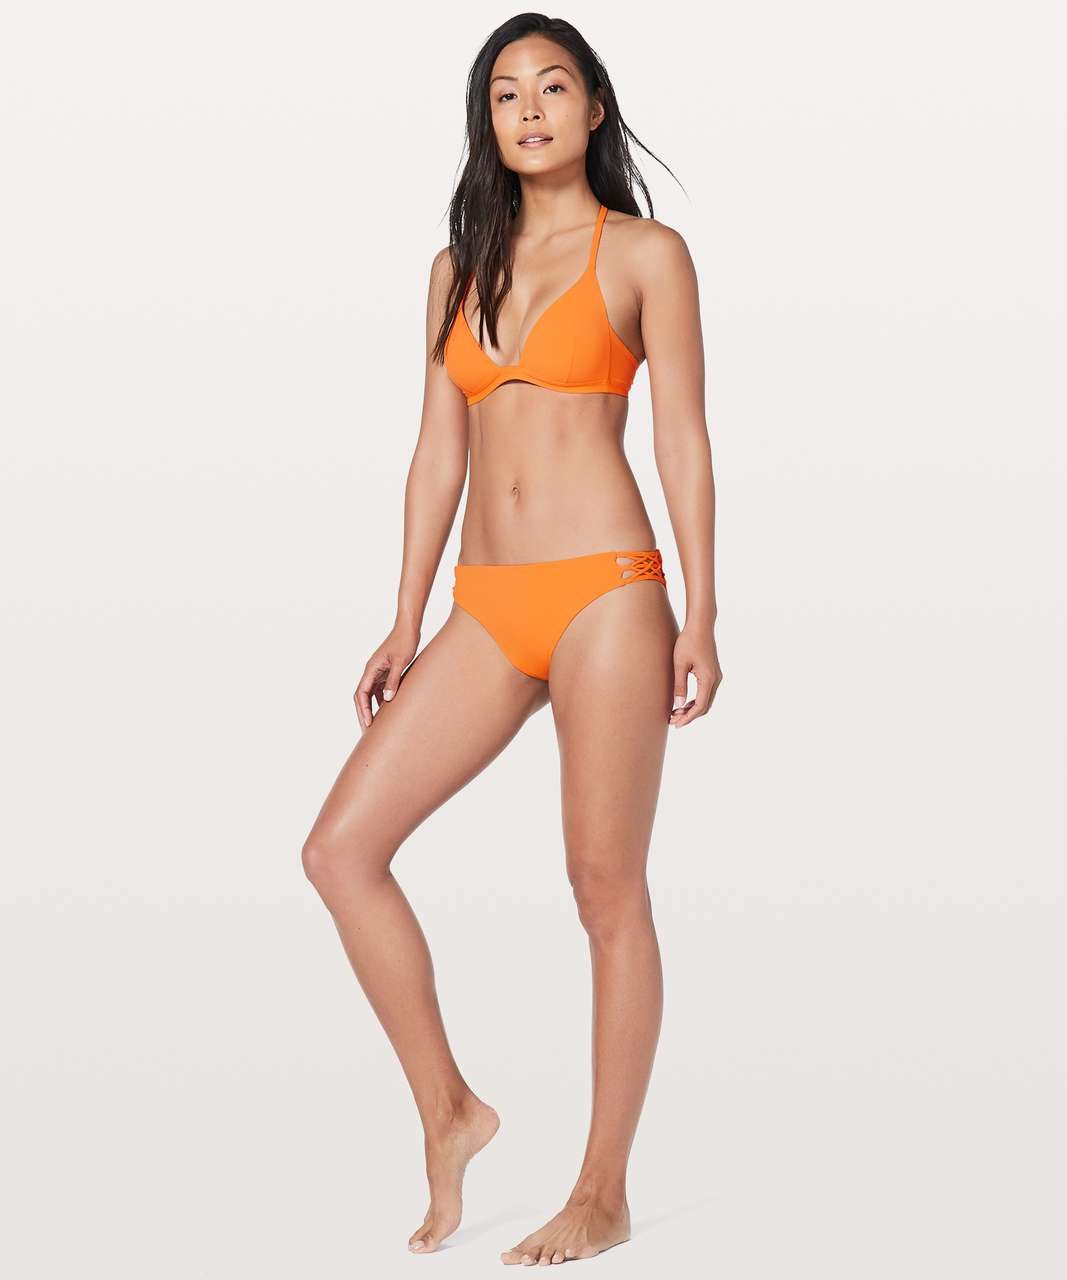 Lululemon Coastline Bottom - Vivid Amber